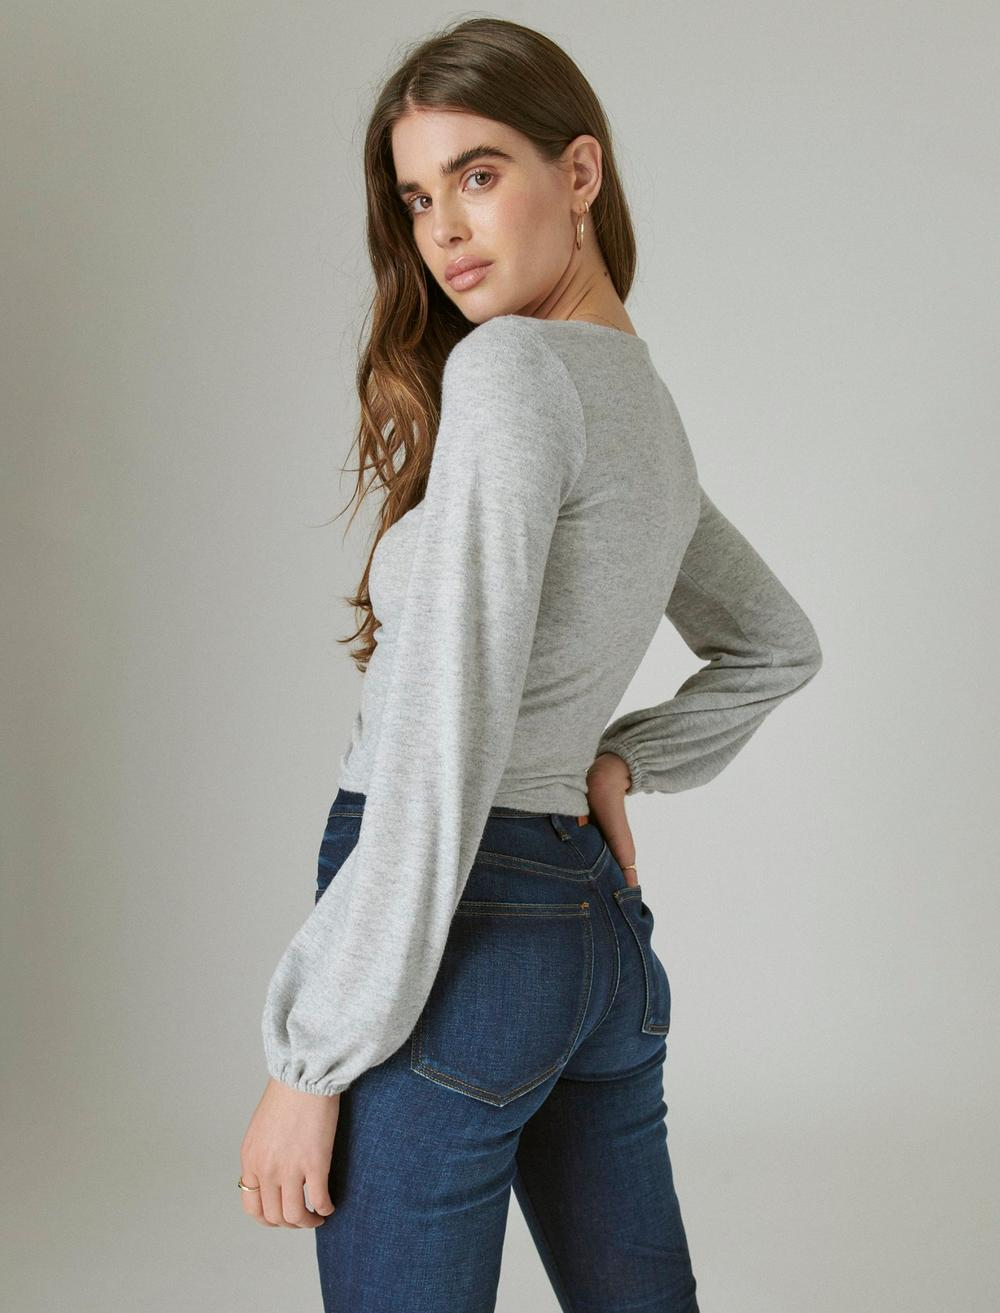 CLOUD JERSEY RIBBED RUCHED TOP, image 4